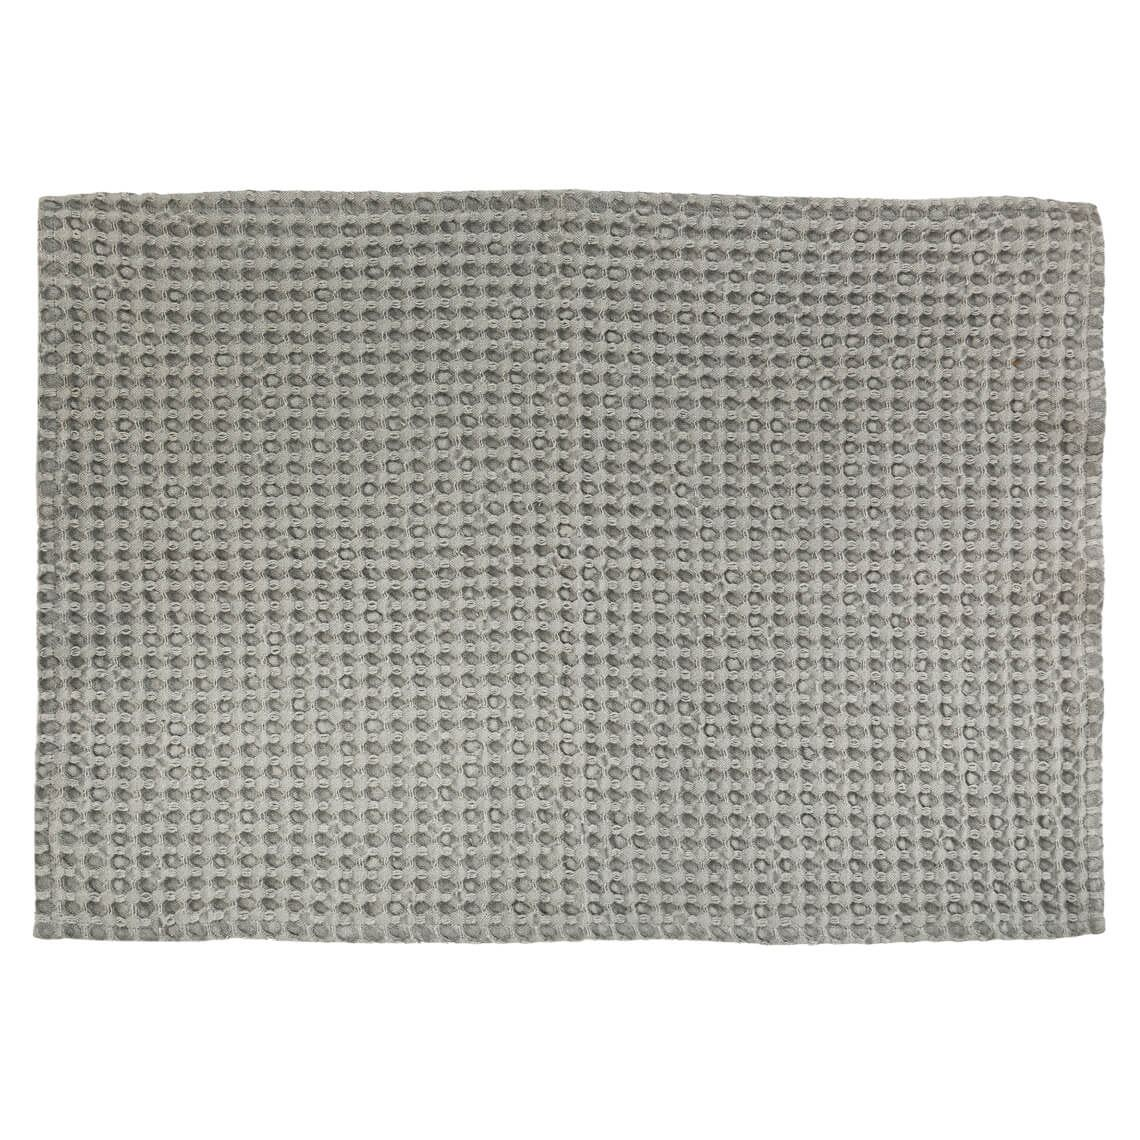 Everitt Tea Towel Size W 50cm x D 1cm x H 70cm in Light Grey Freedom